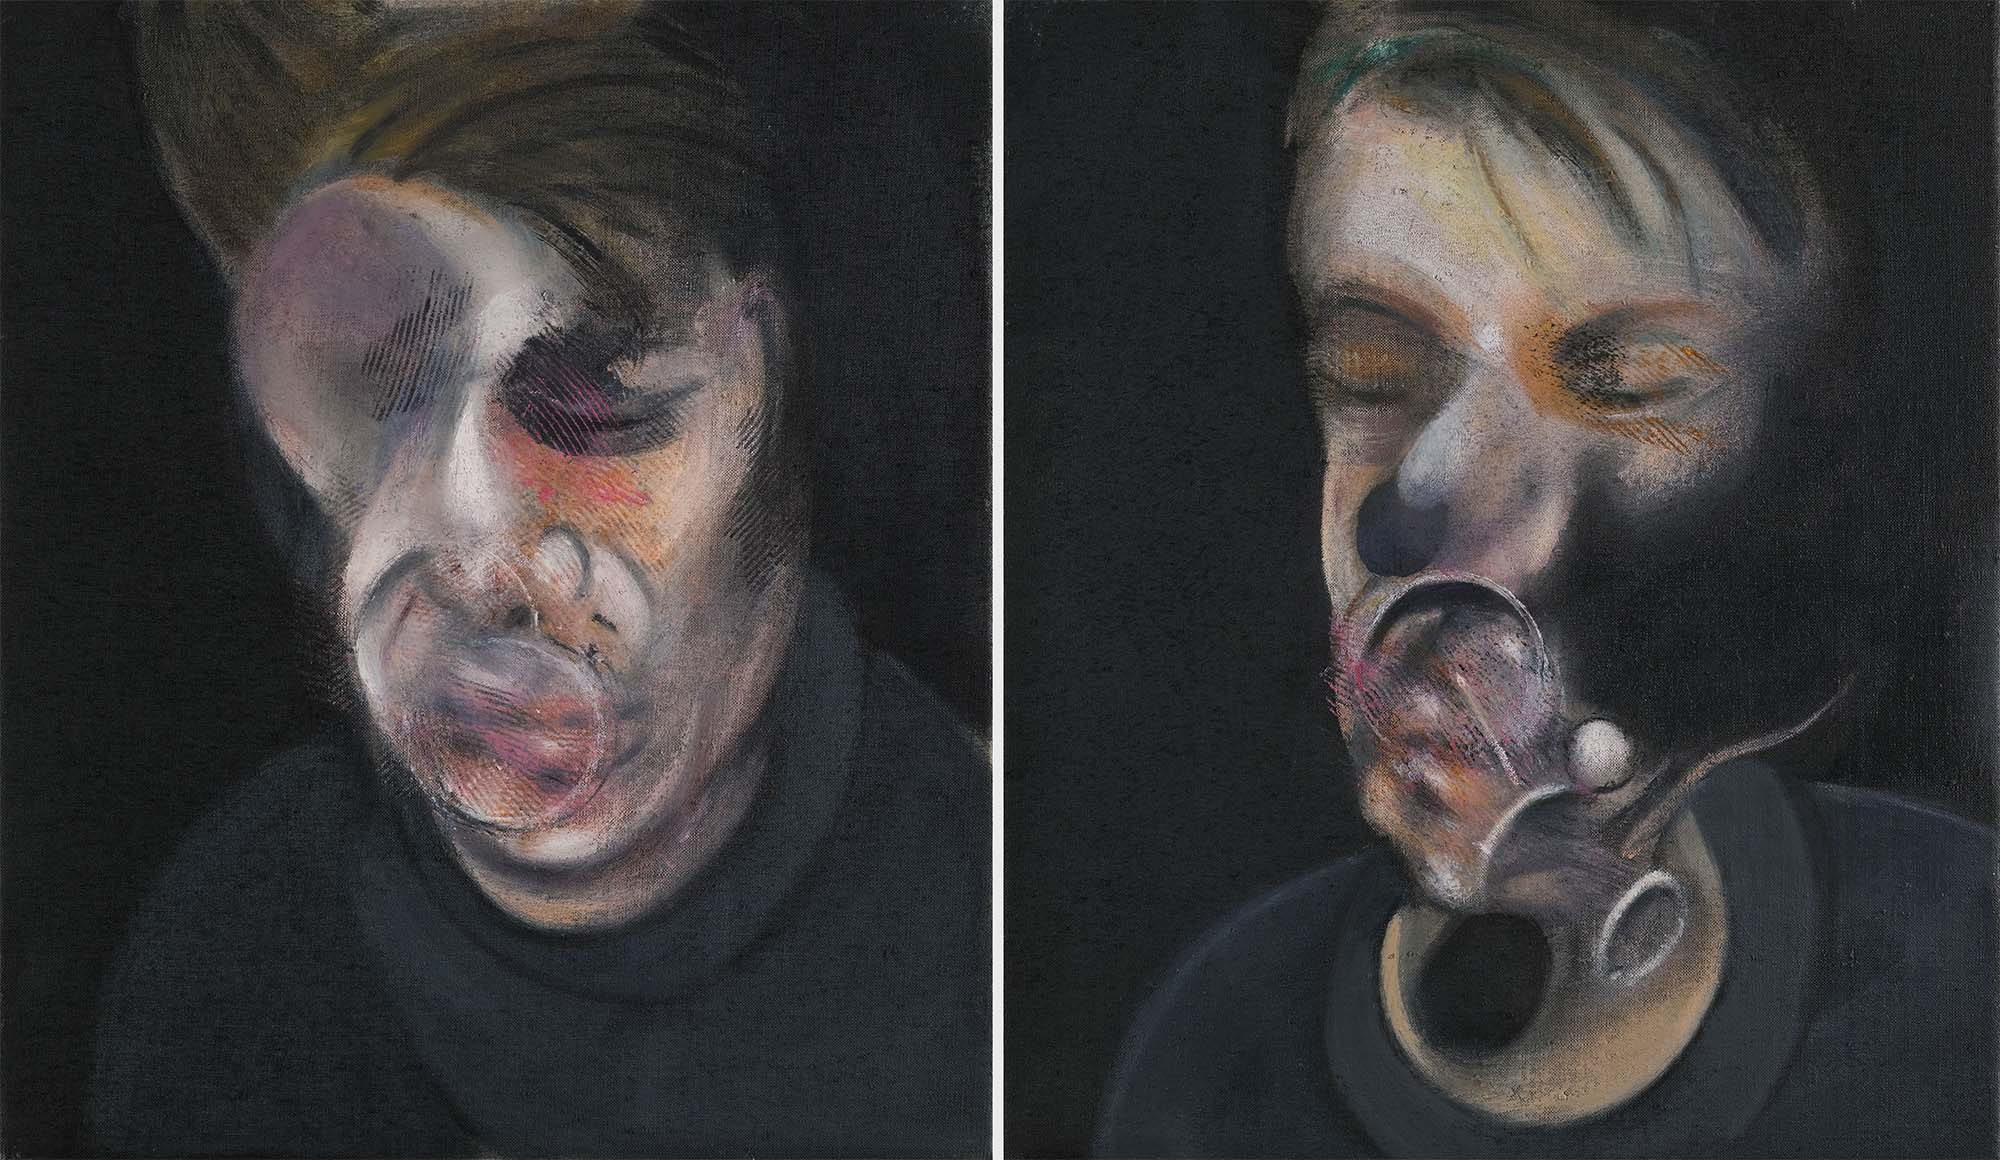 Francis Bacon: Two Studies for Self-Portrait (1977) | Image from Observer